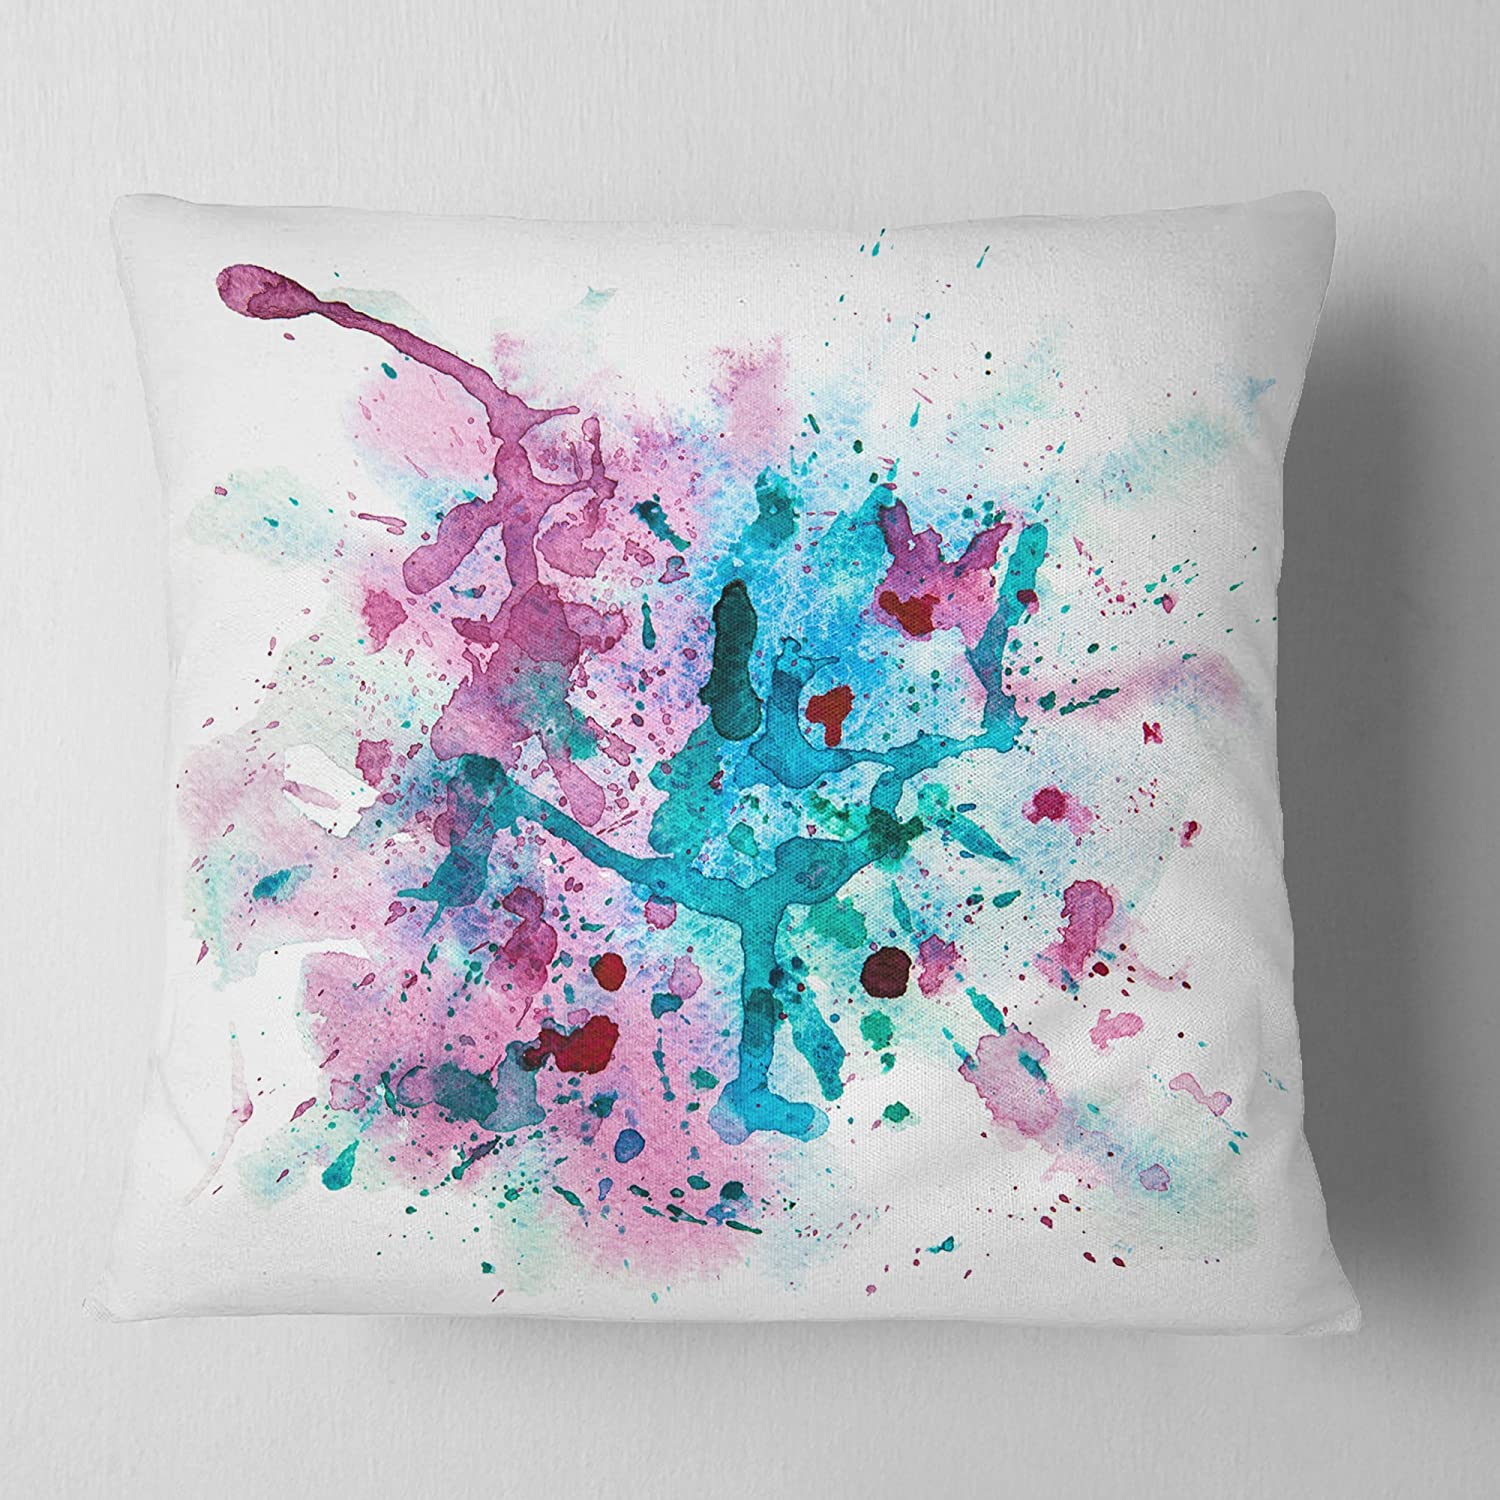 Designart CU7441-18-18 Blue and Purple Paint Stain Abstract Watercolor Throw Pillow 18 x 18